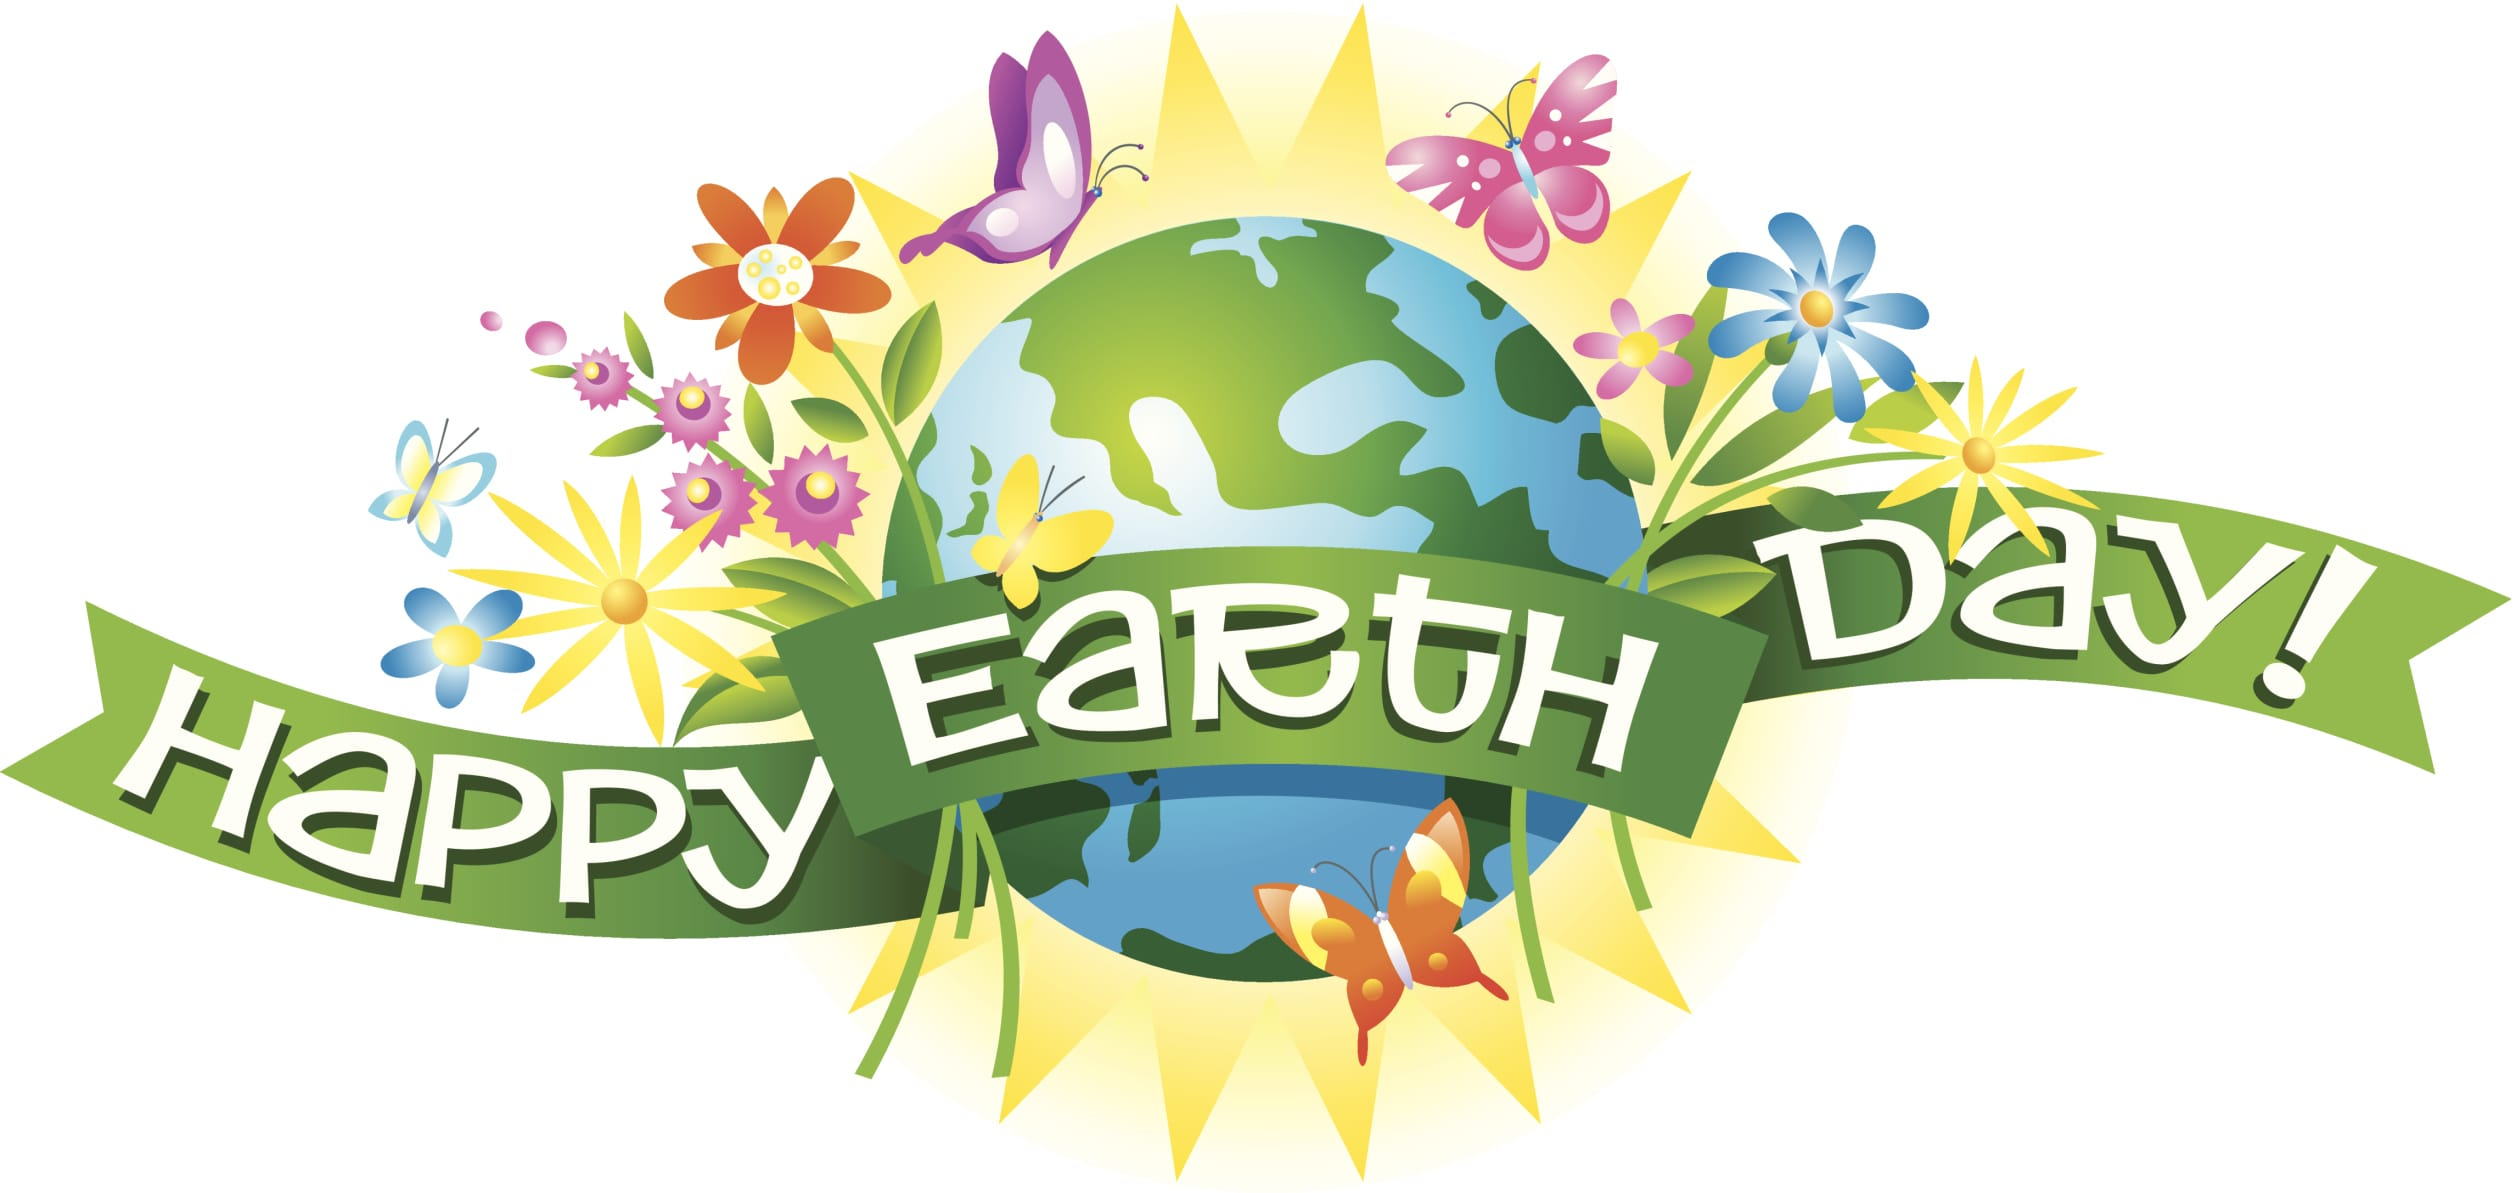 Earth day 2014 italia